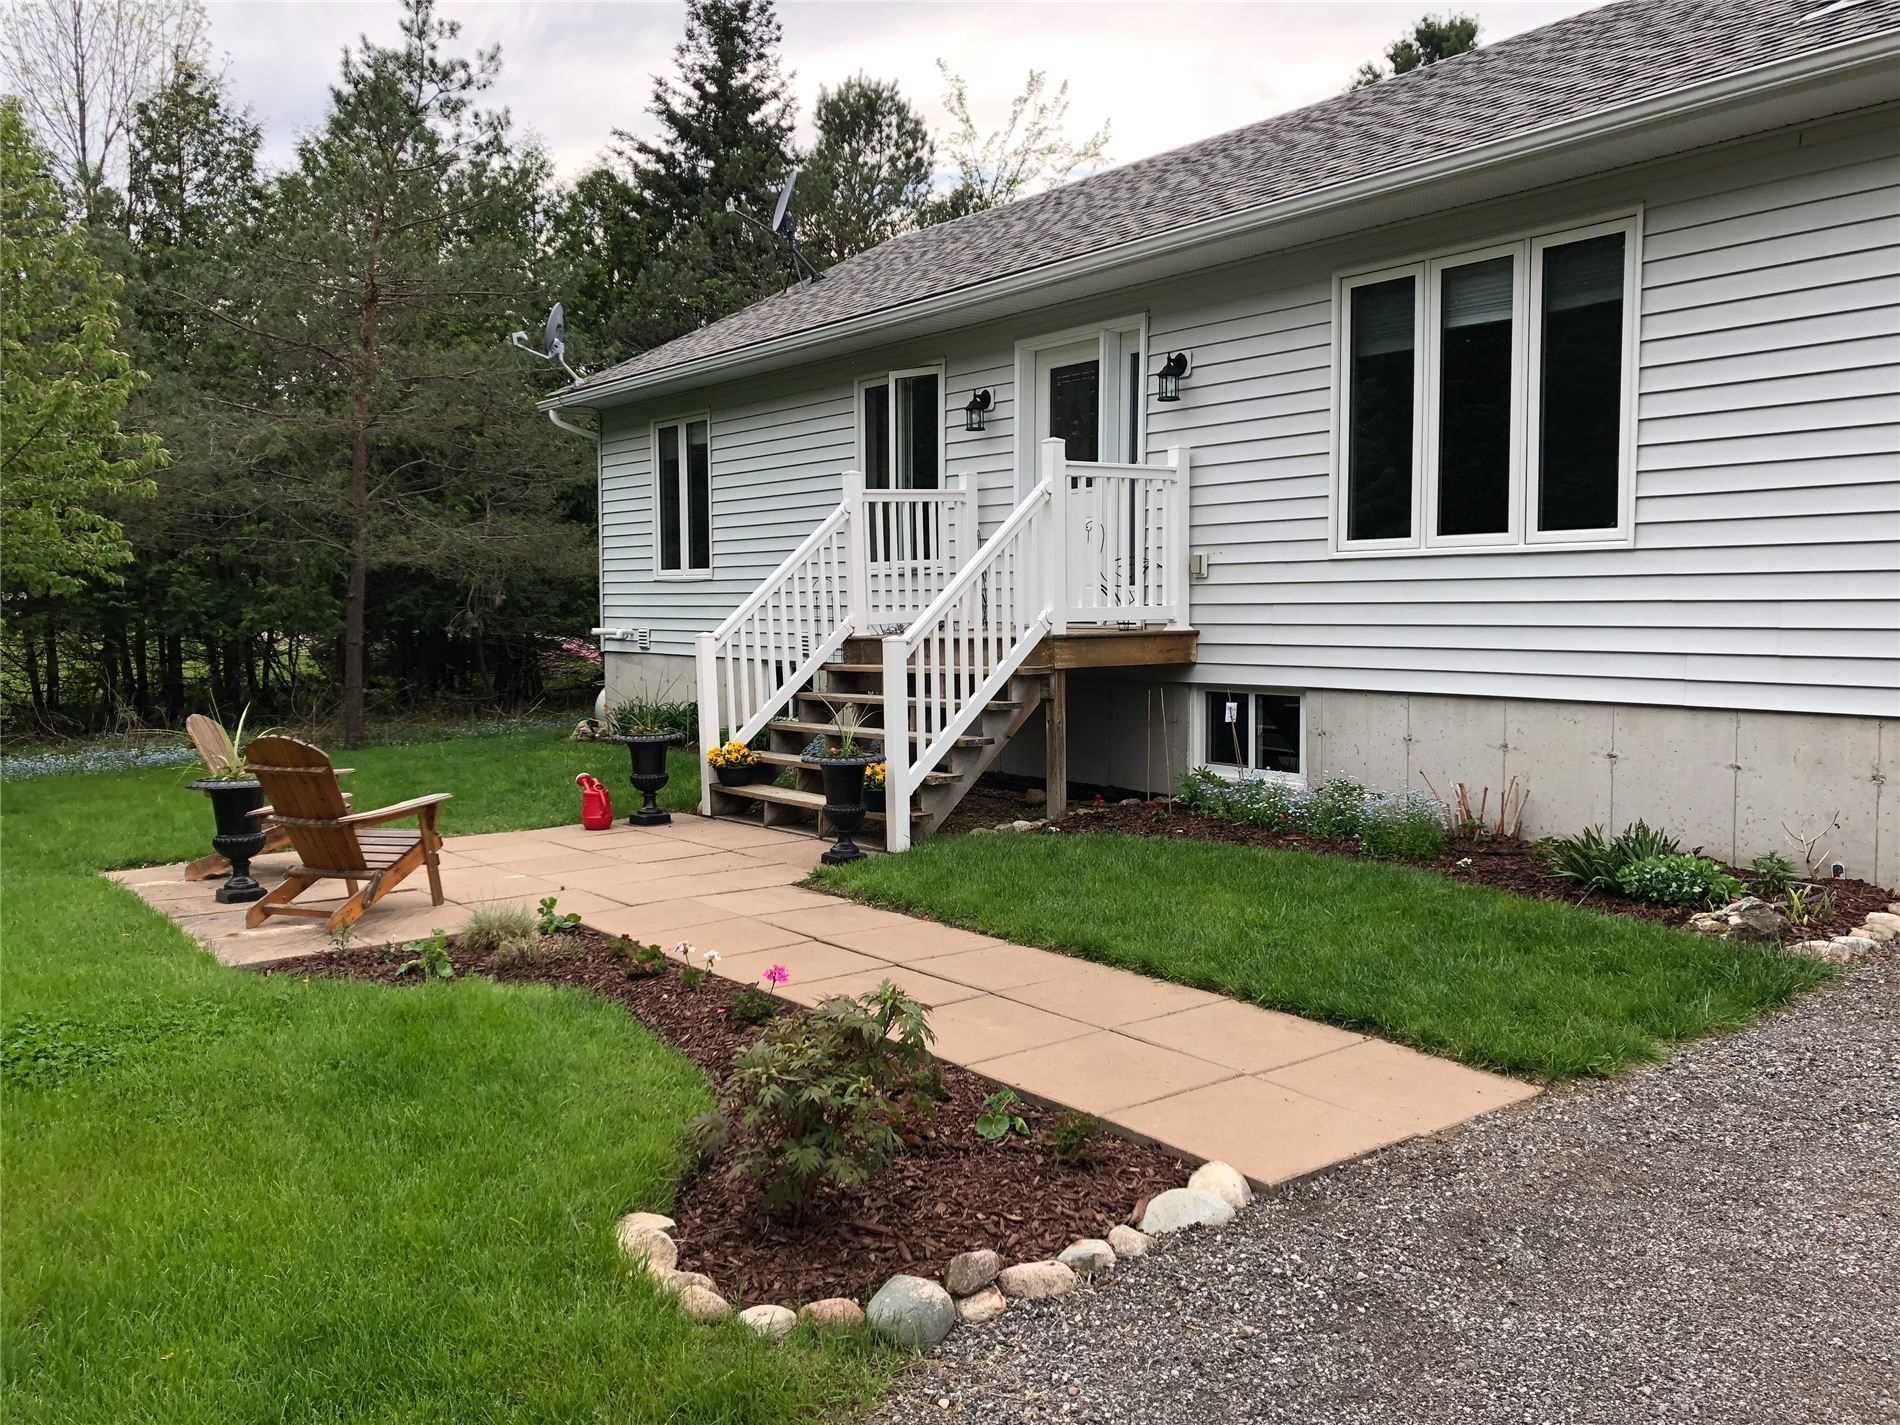 Main Photo: 9224 County Road 1 Road in Adjala-Tosorontio: Hockley House (Bungalow) for sale : MLS®# N5180525